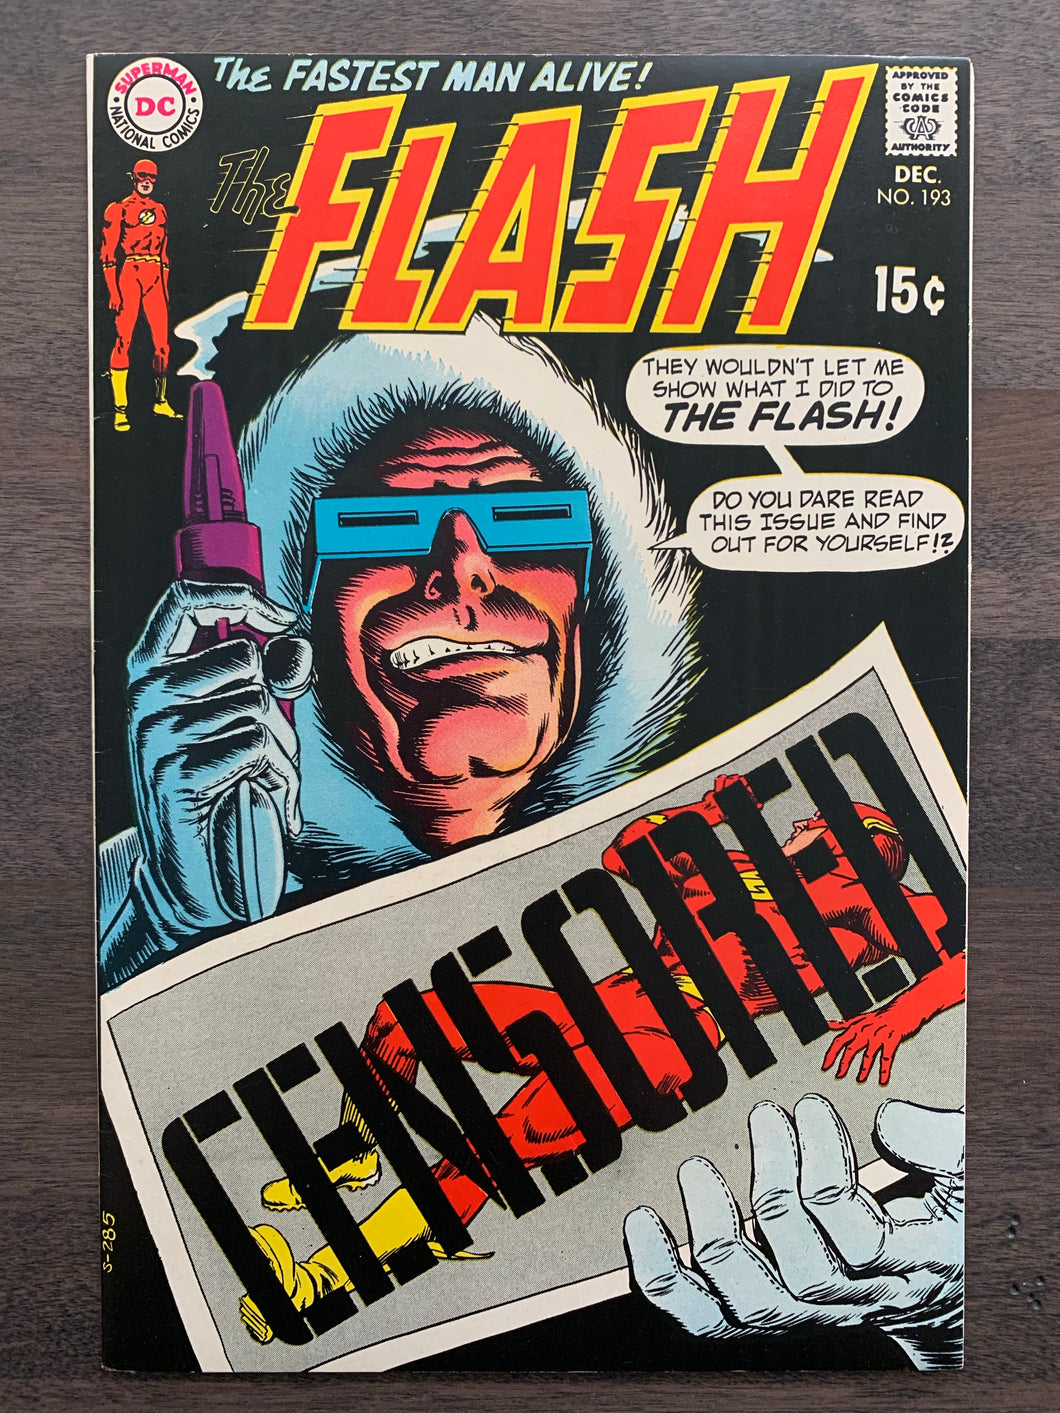 Flash #193 - Captain Cold